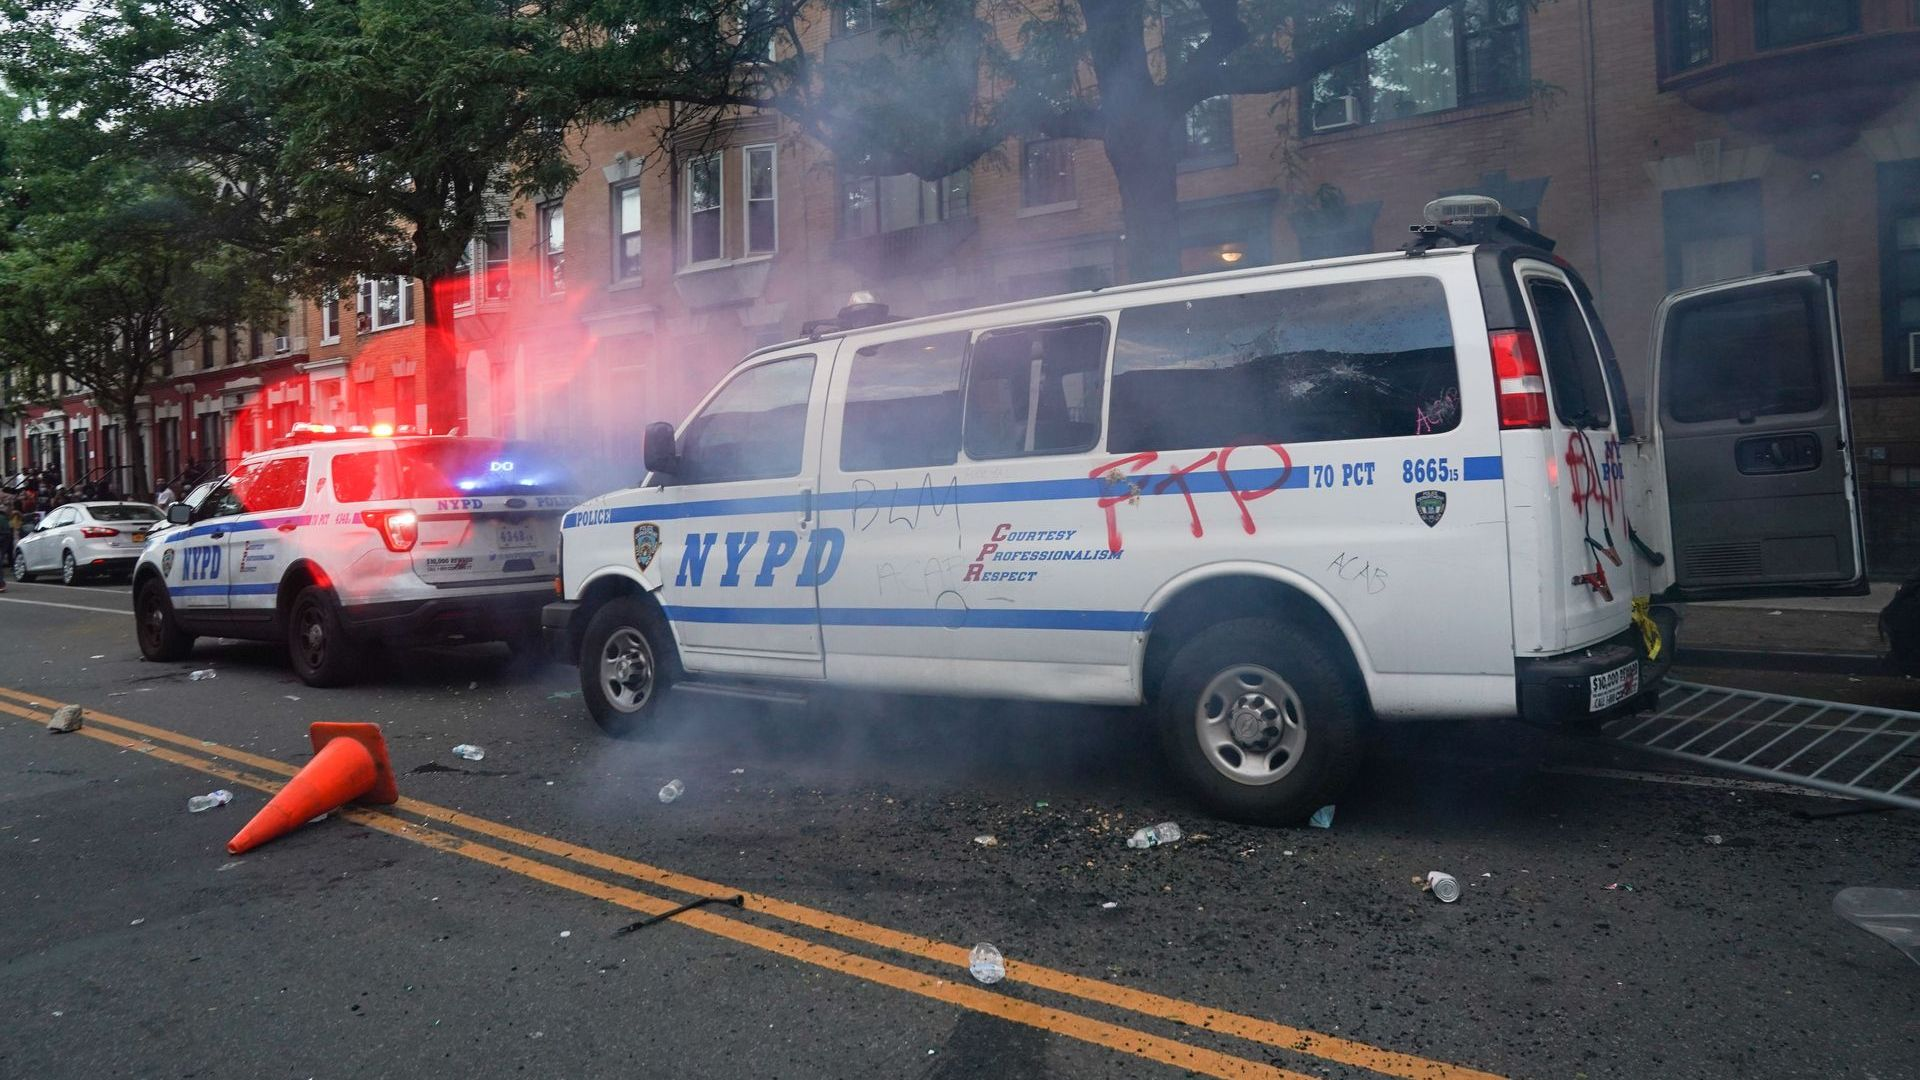 2 Sisters Face Federal Charges for Throwing Molotov Cocktail in NYPD Van